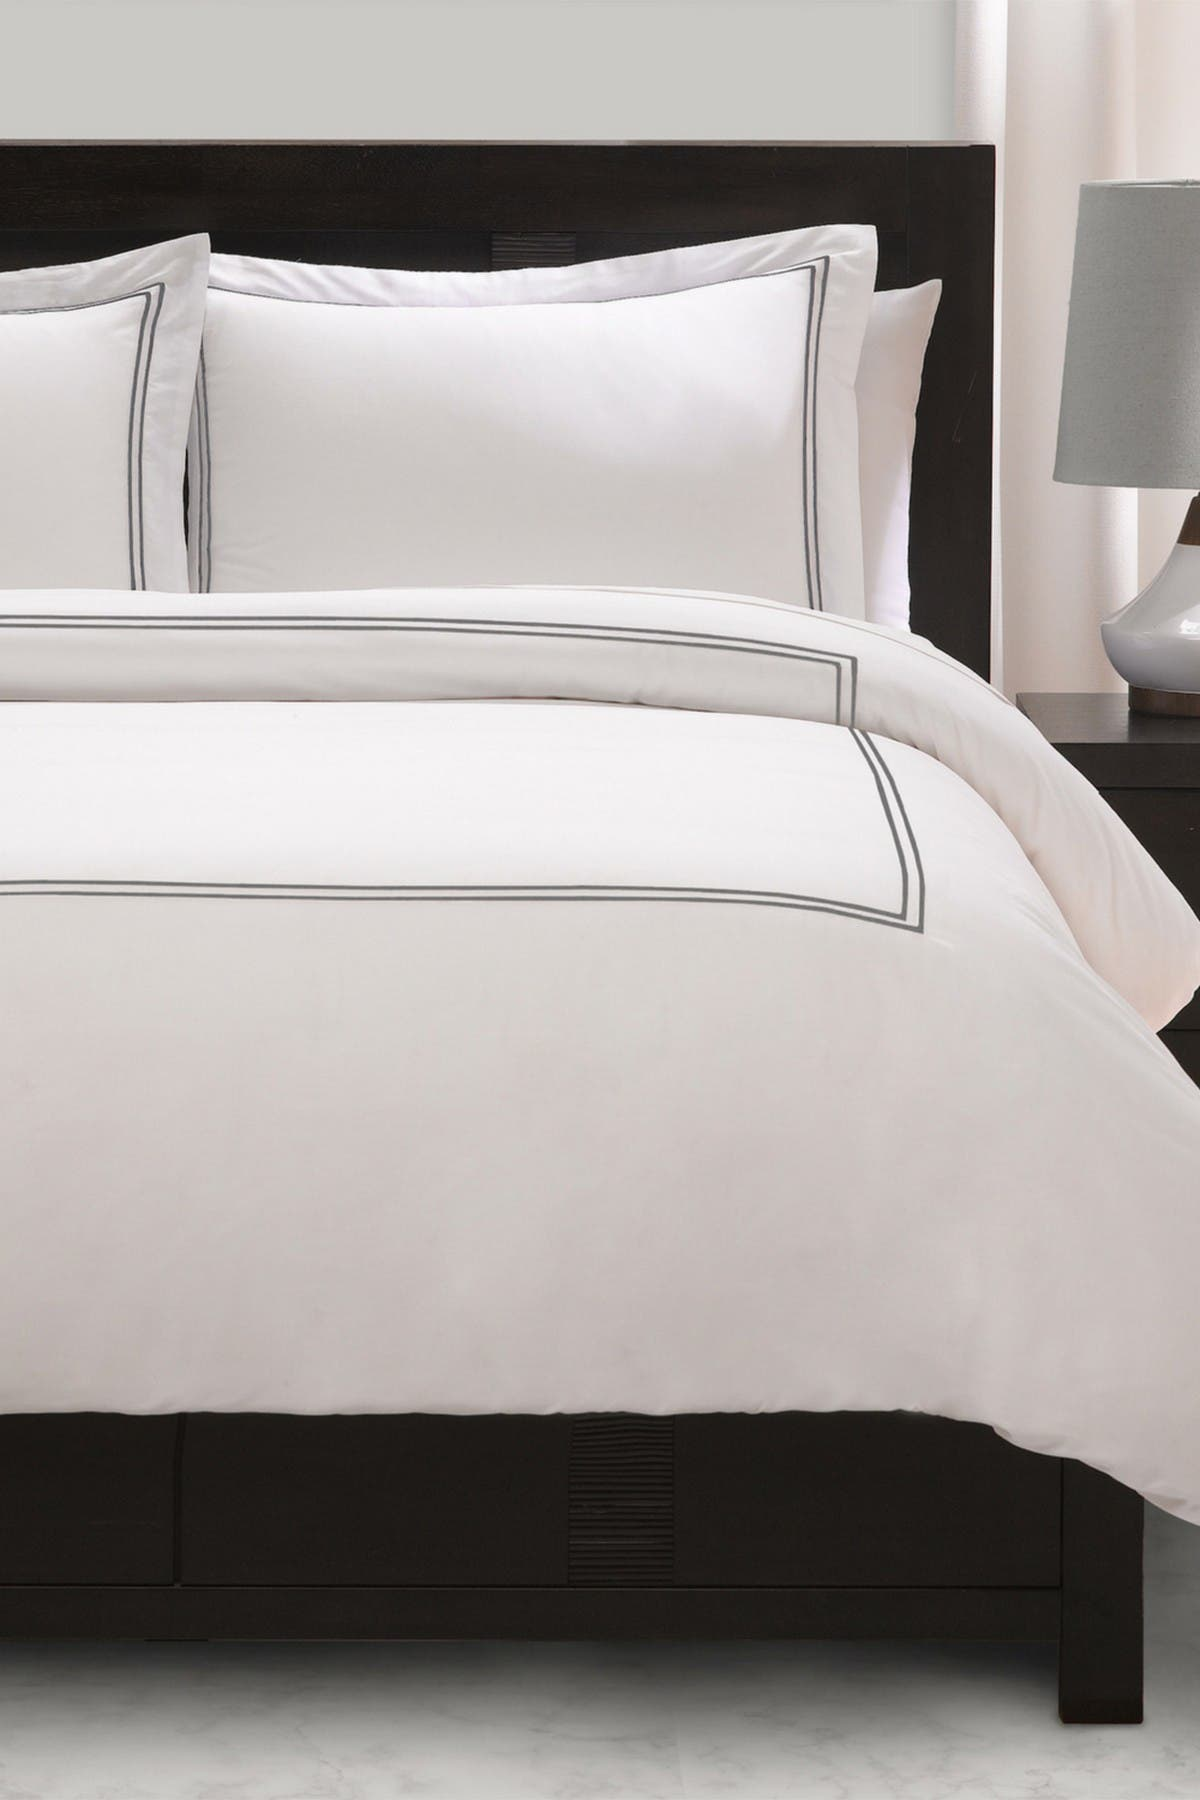 Image of Ella Jayne Satin Stitched Percale Duvet Cover Set - King/Cal King - Silver